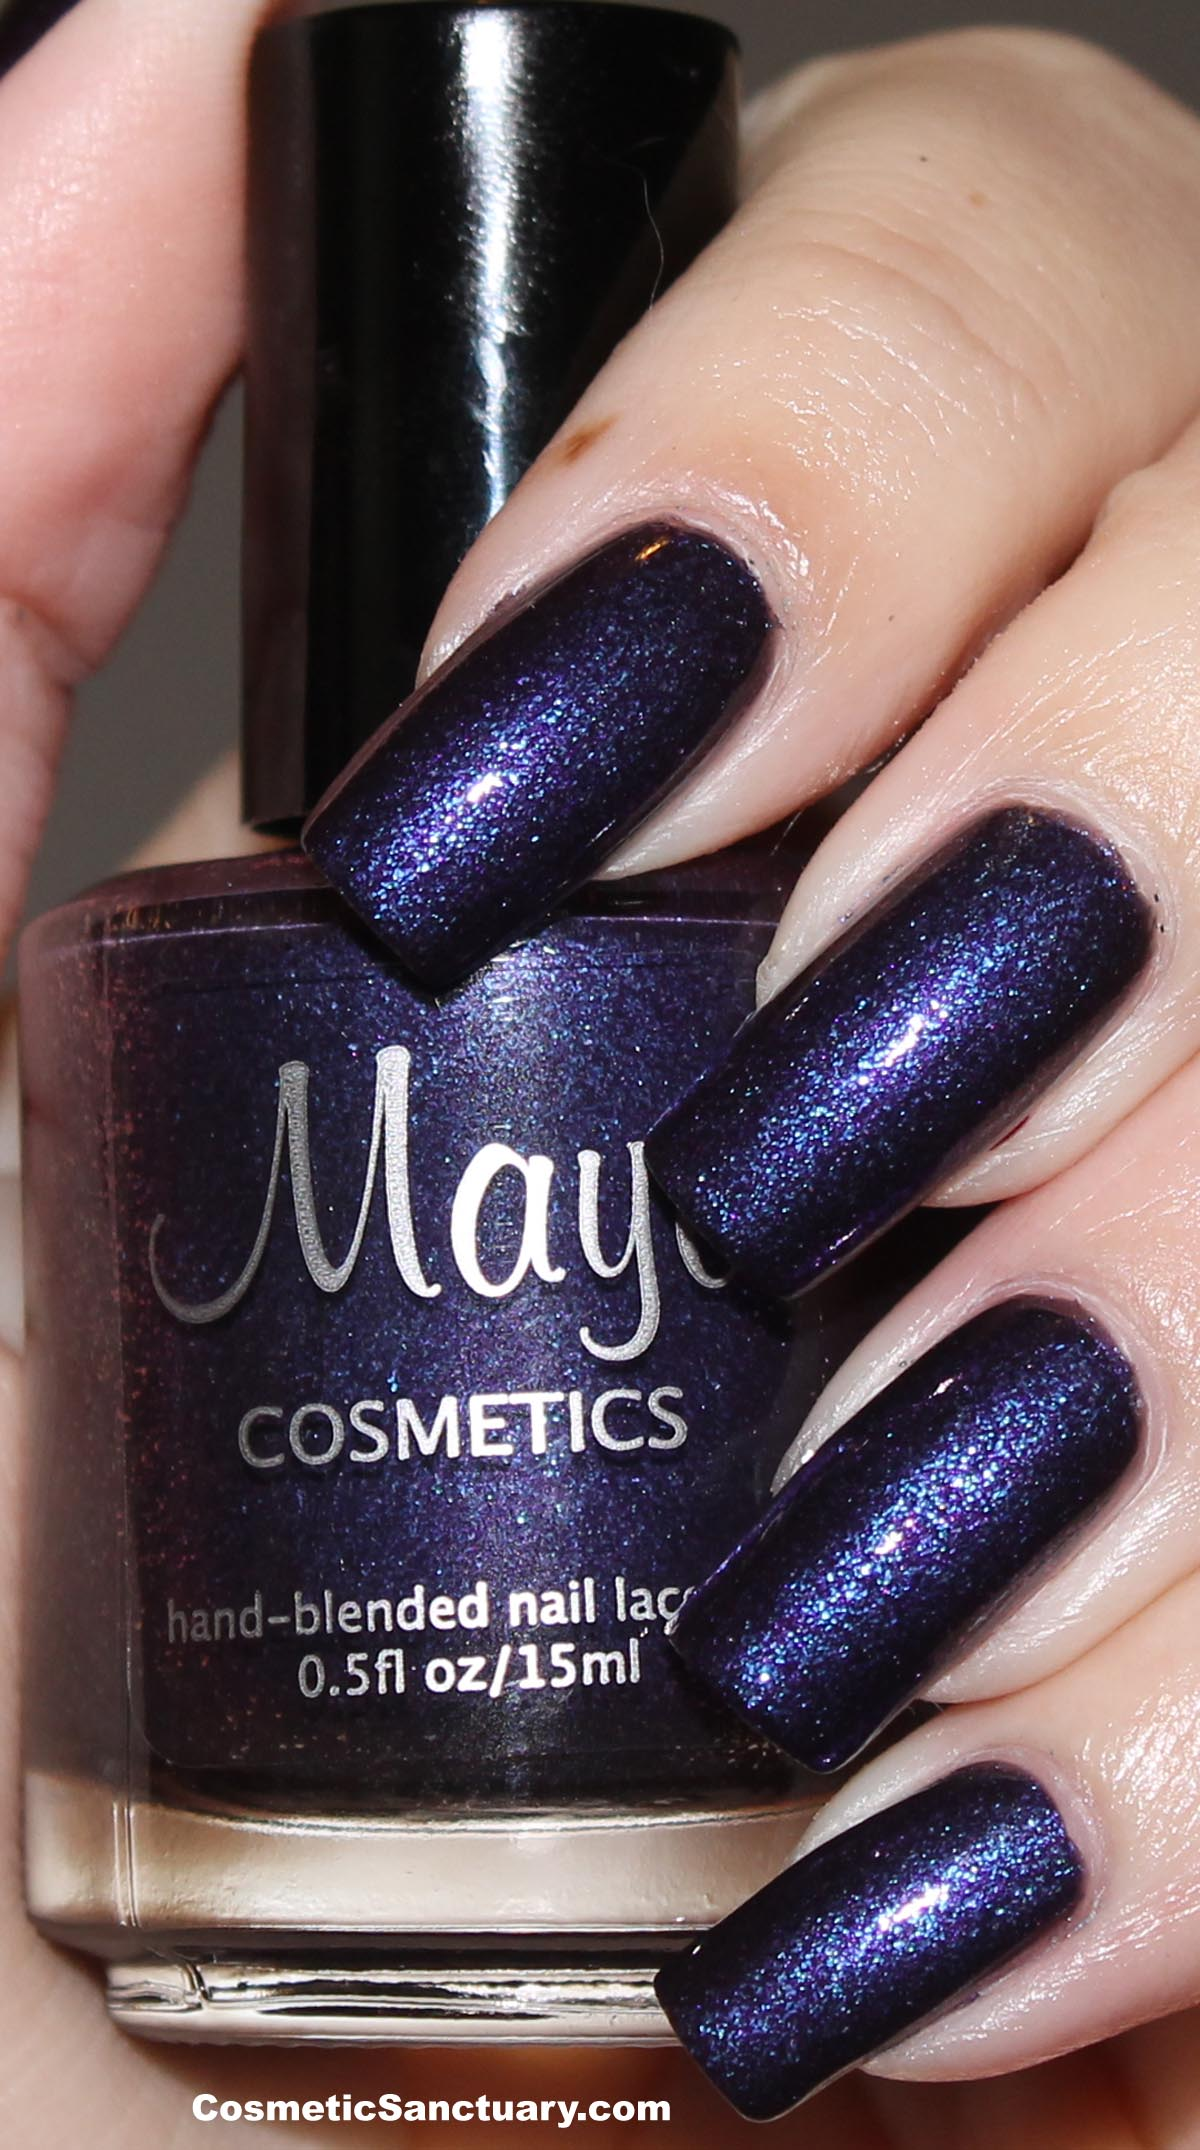 Maya Cosmetics Nail Lacquer Swatches and Review